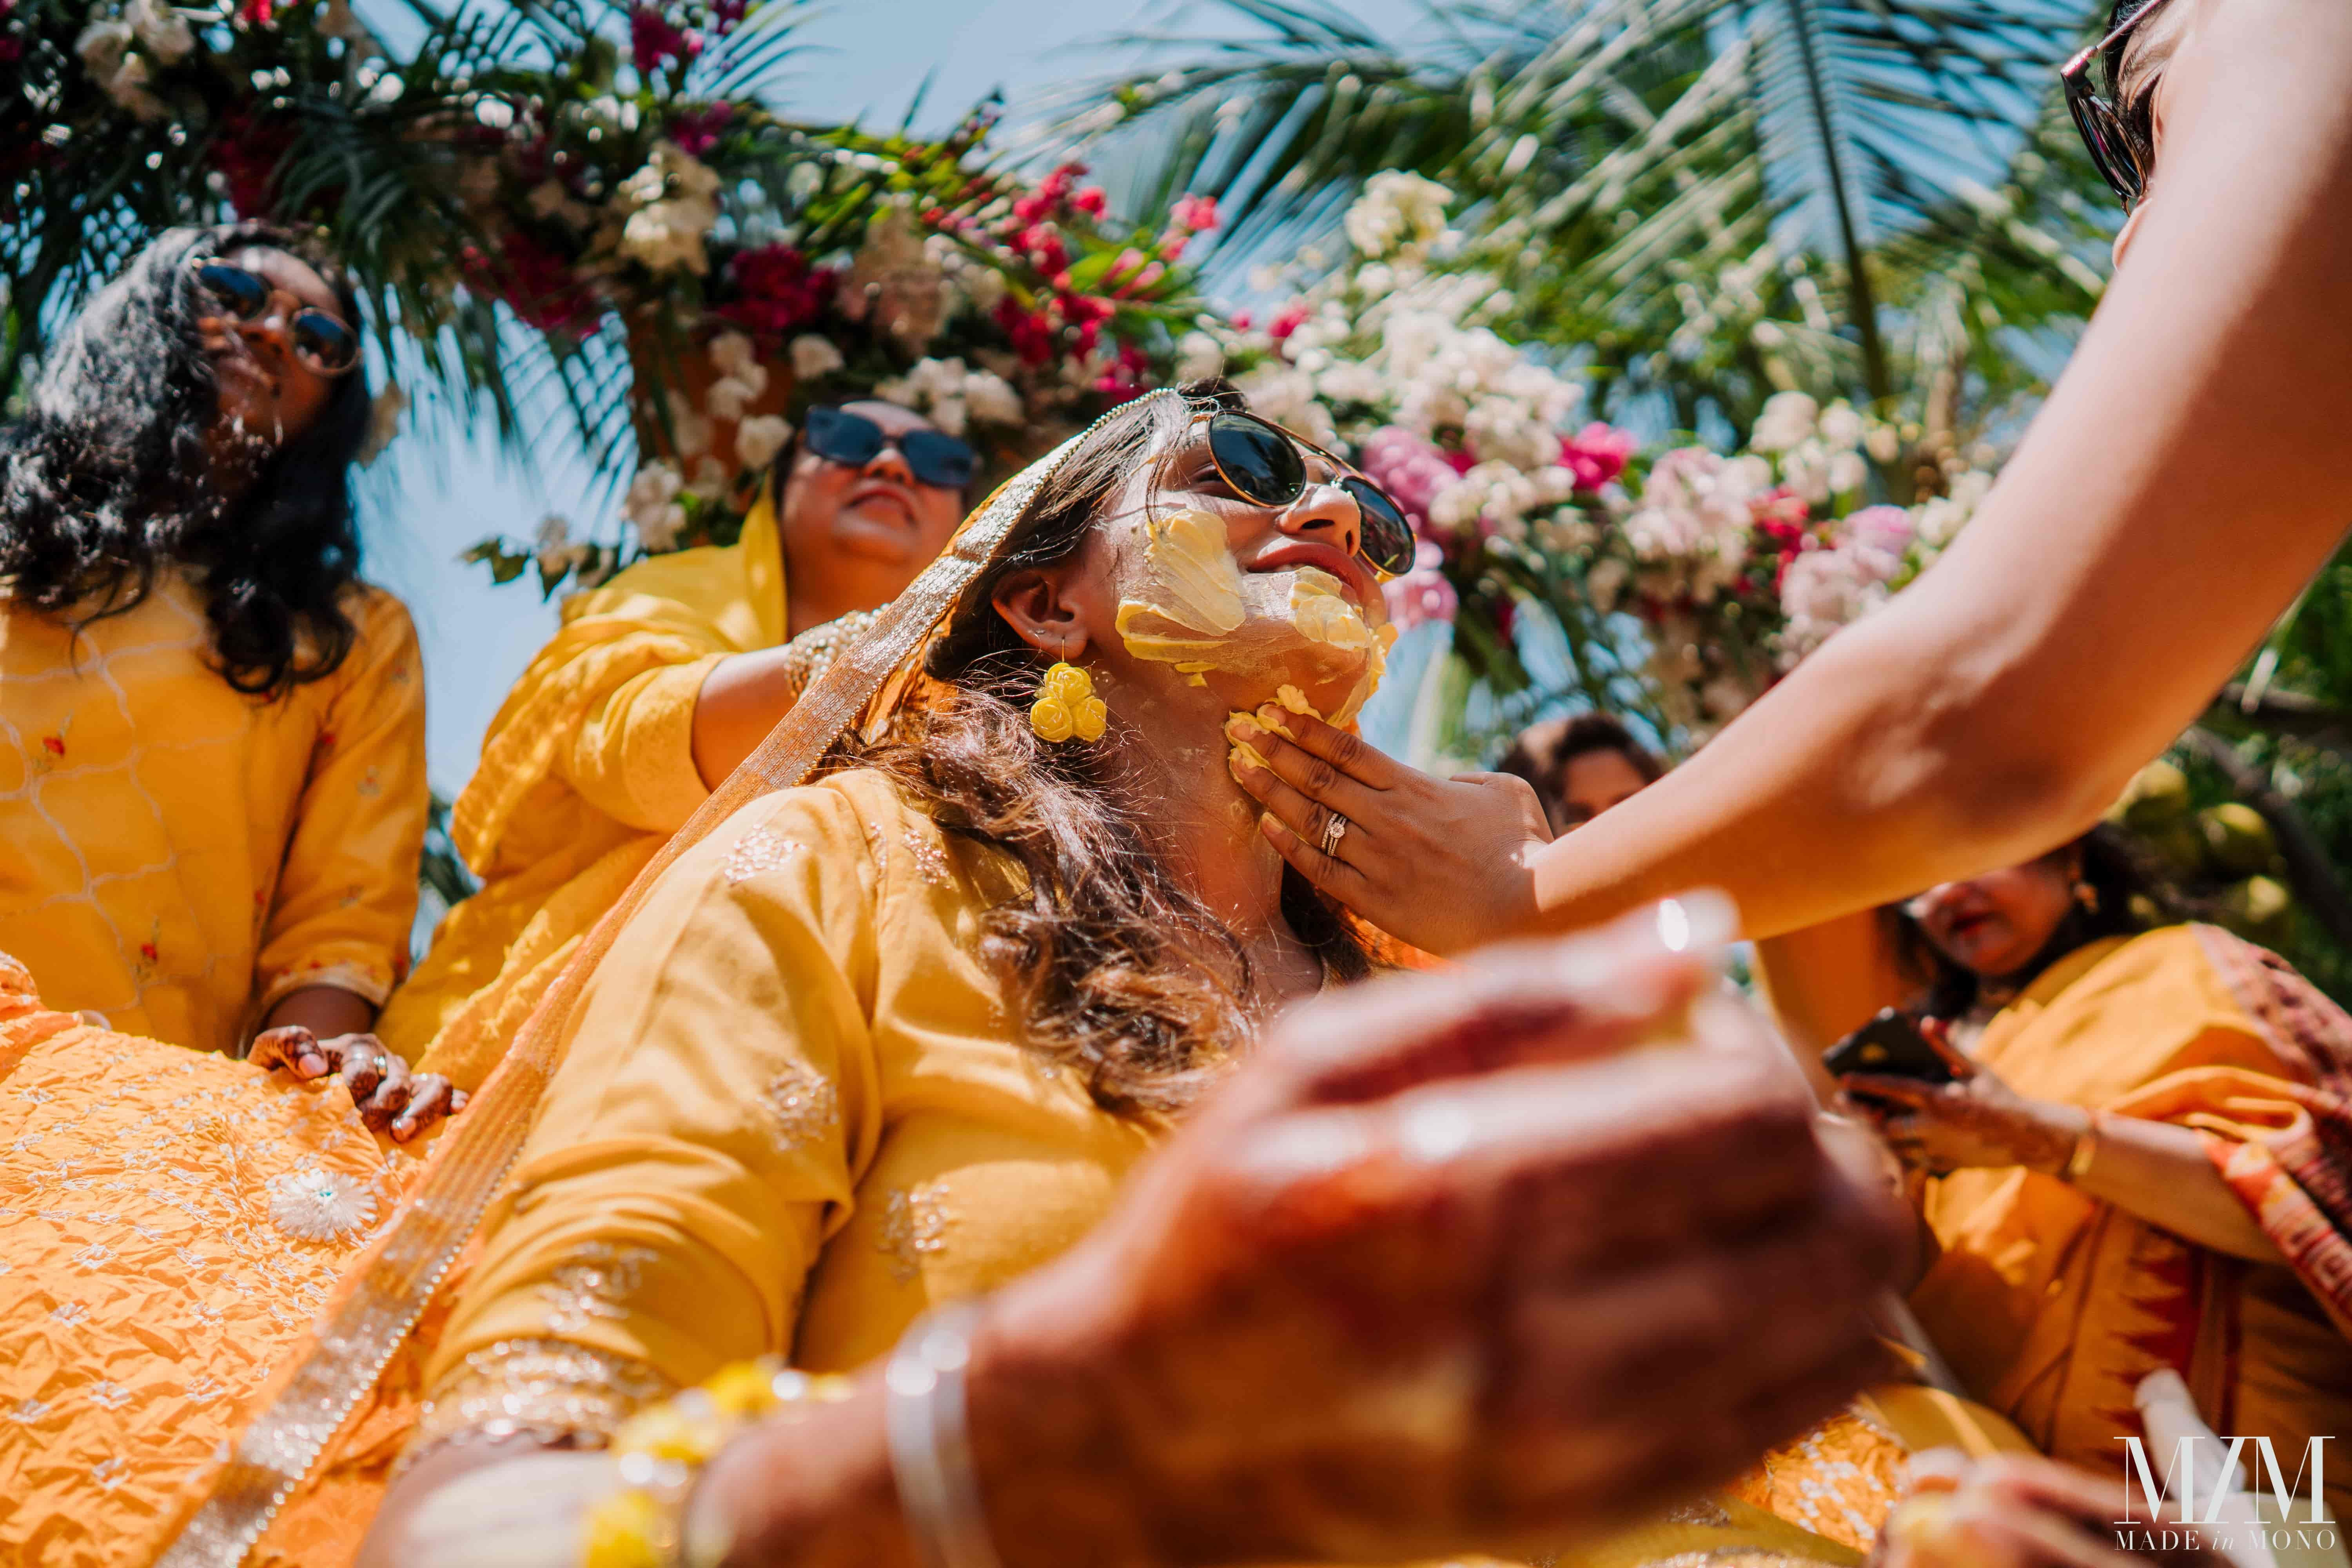 A Serene Wedding In Sri Lanka With Picturesque Location And Surroundings In 2020 Picturesque Serenity Wedding Story